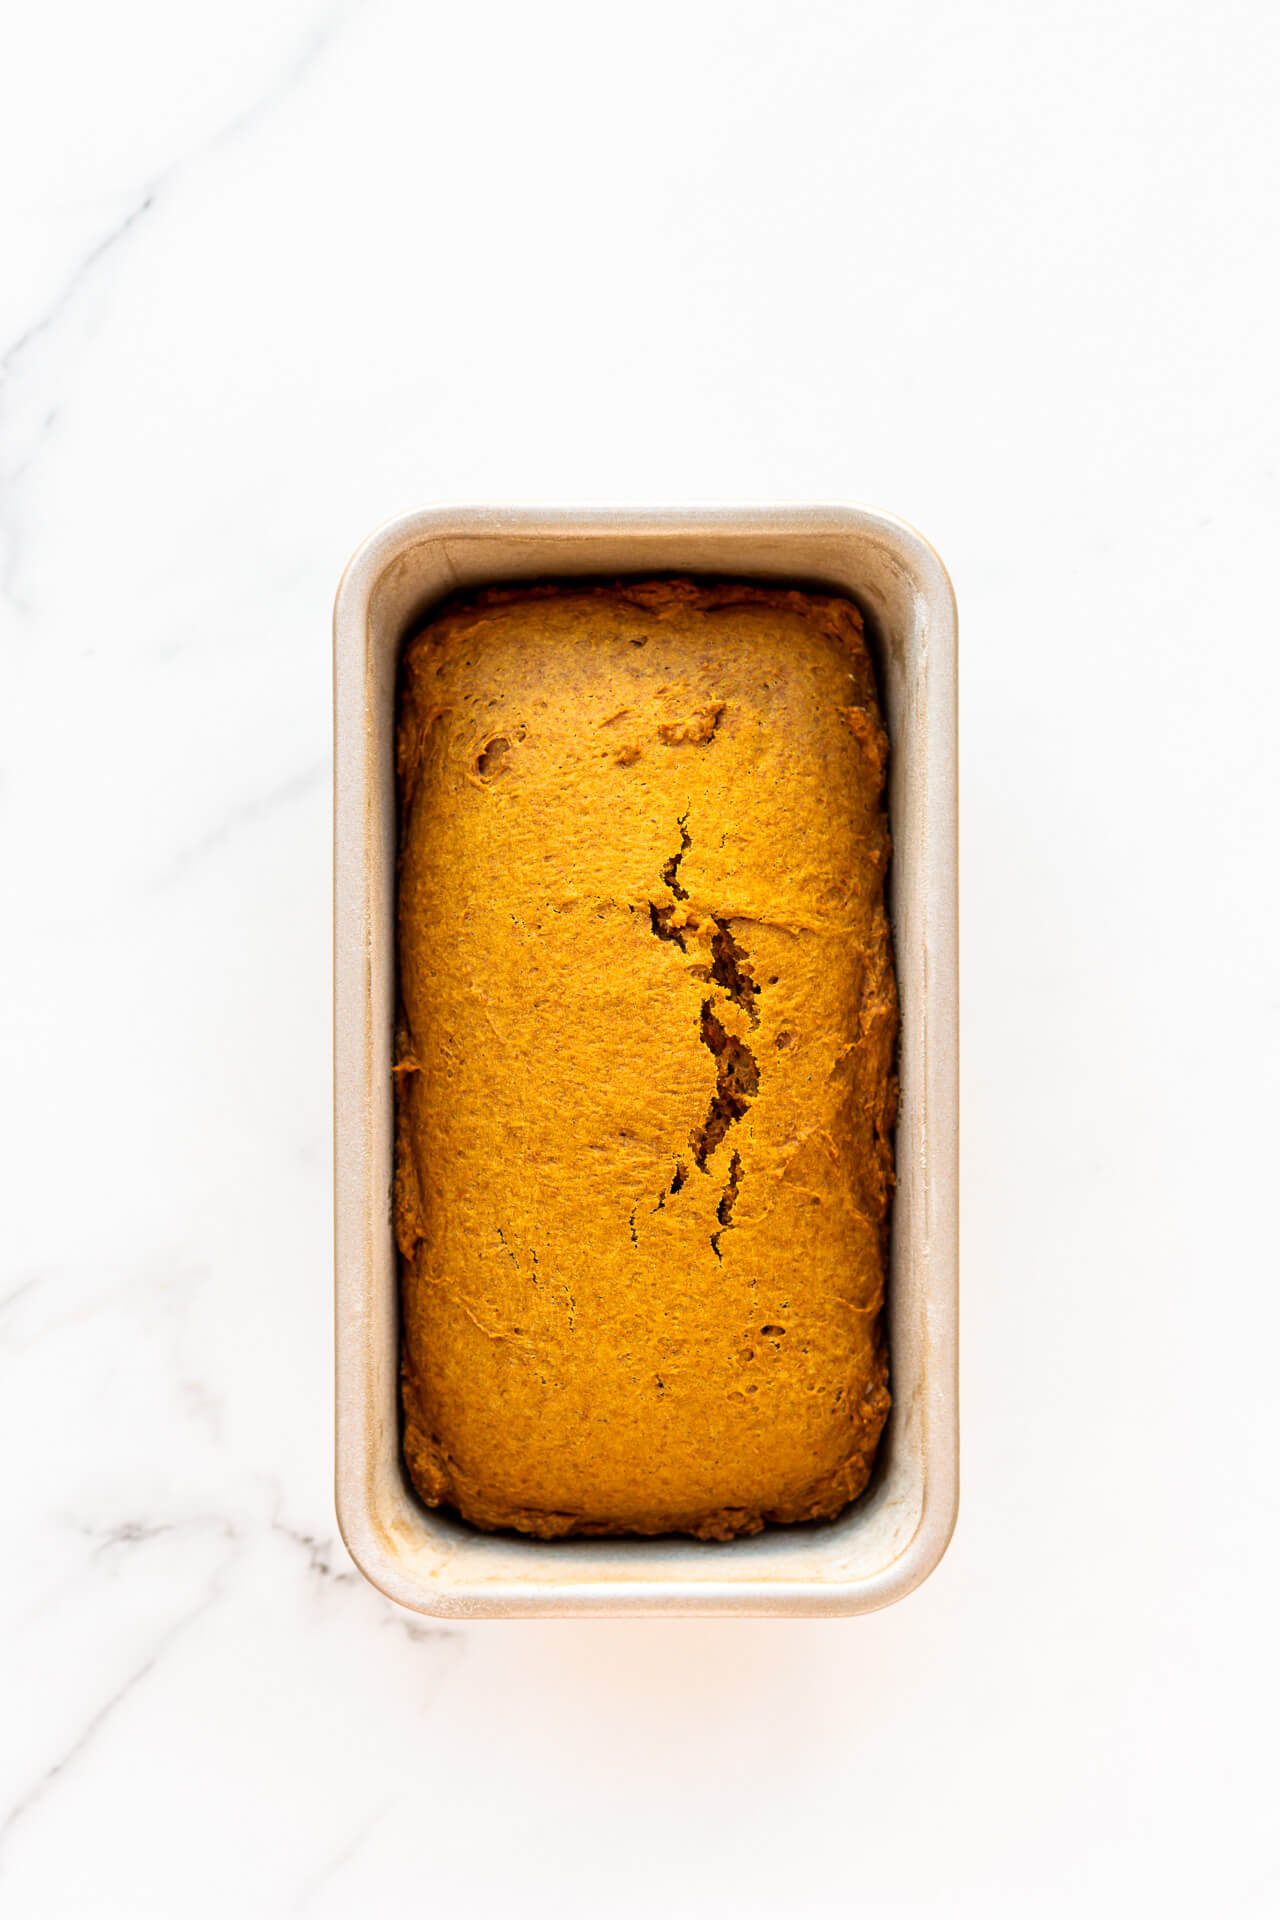 Freshly baked eggless pumpkin bread cooling in the loaf pan it was baked in